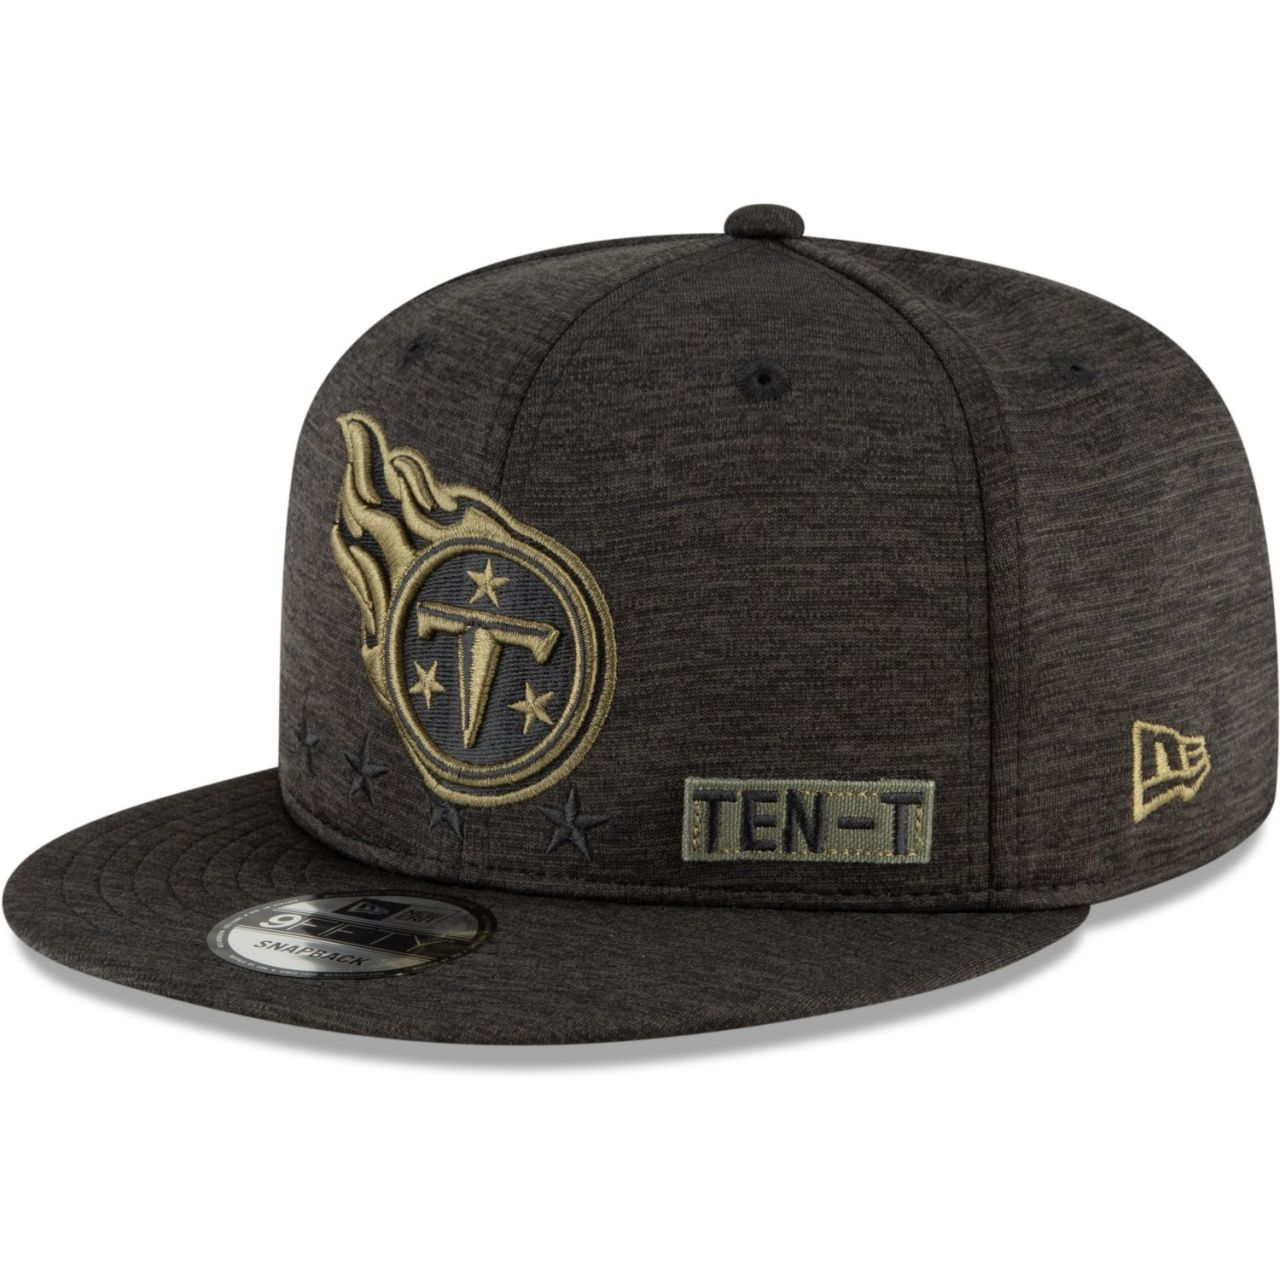 amfoo - New Era 9FIFTY Cap Salute to Service Tennessee Titans